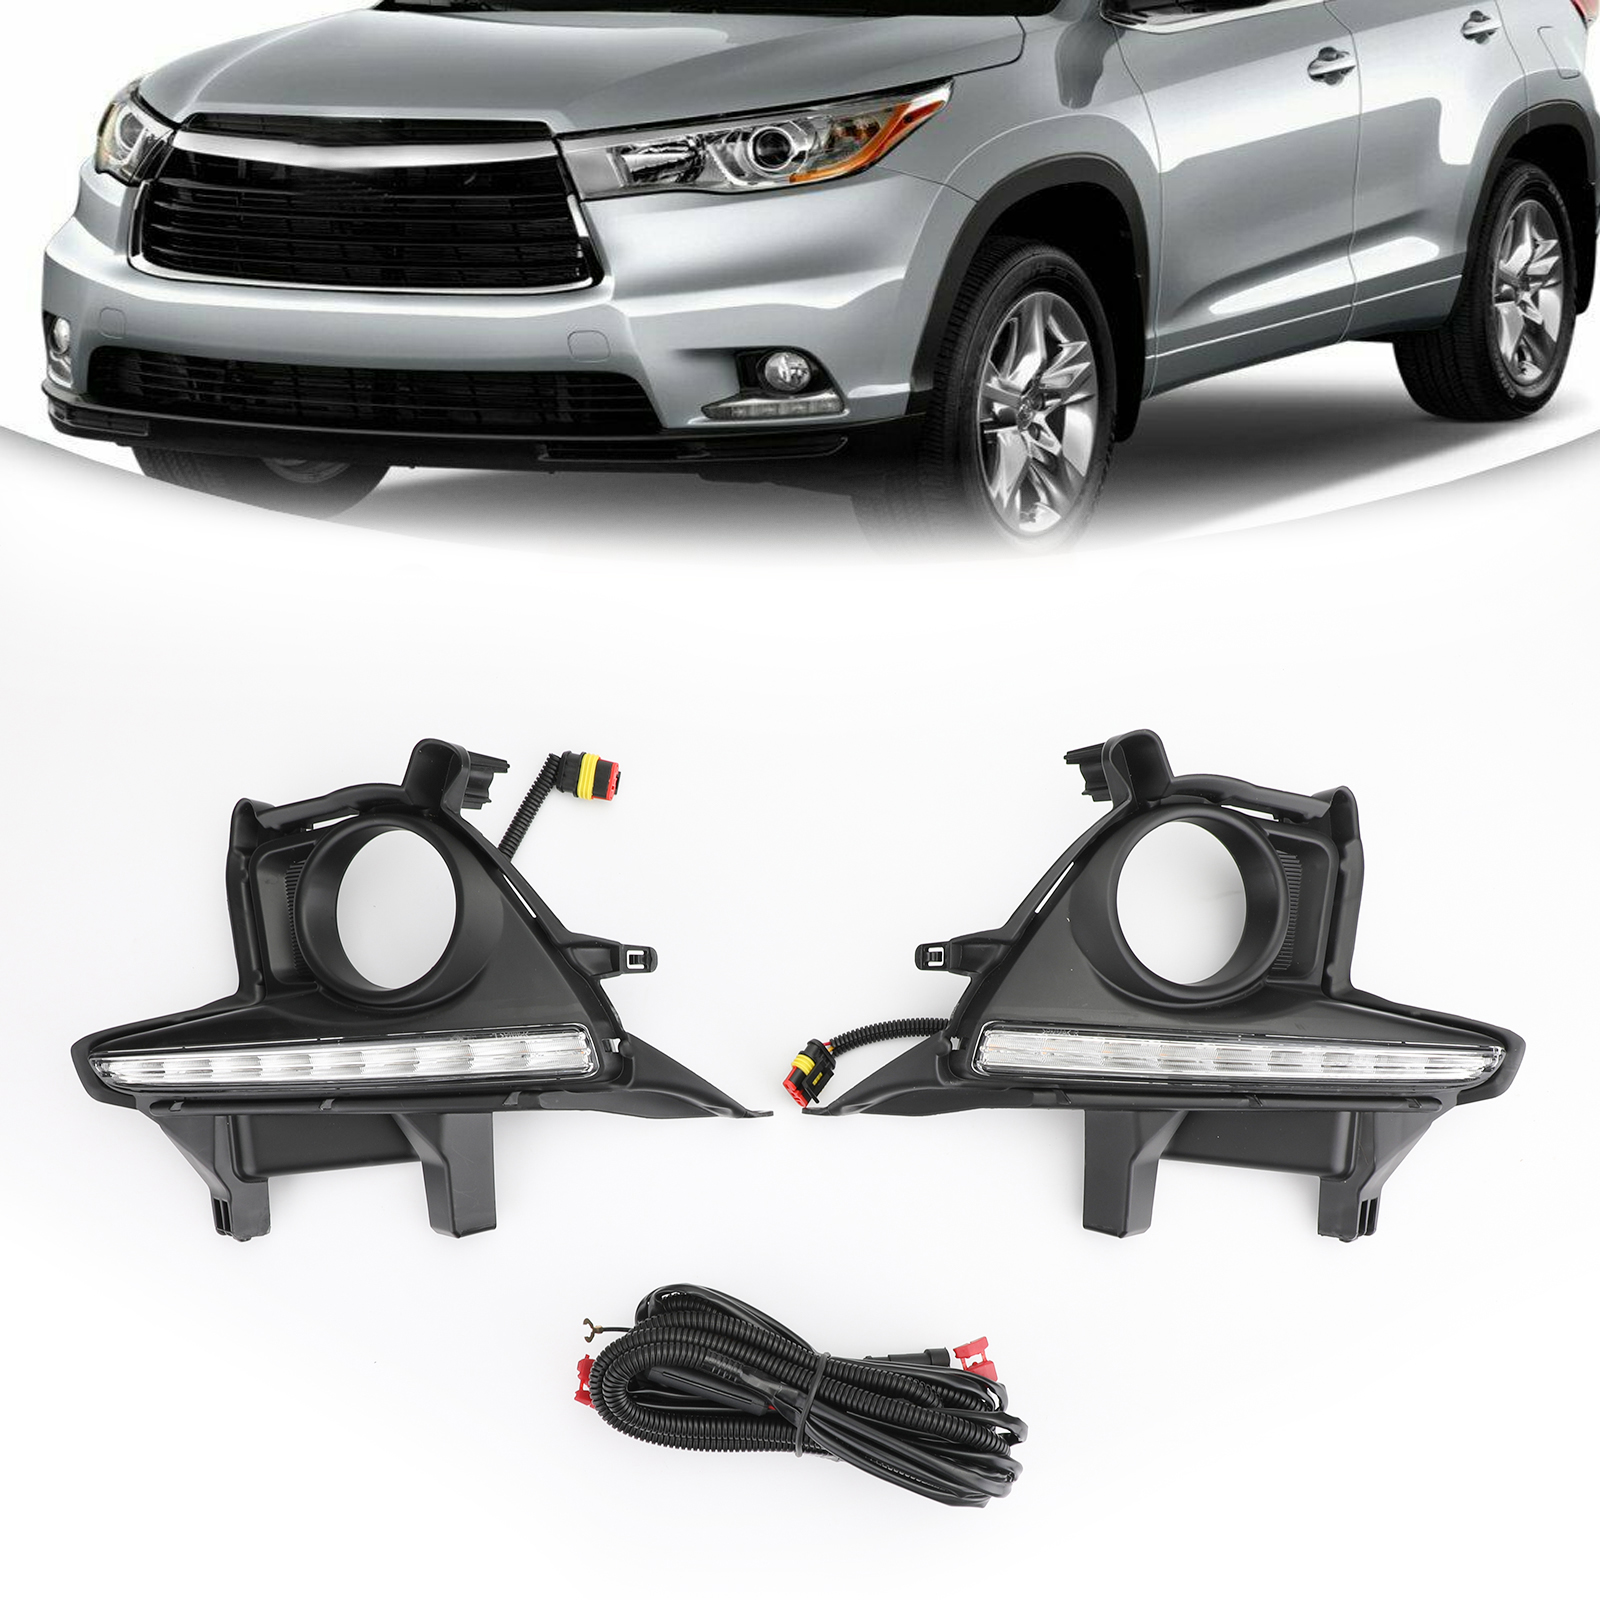 Areyourshop Pair LED Bumper Fog Lights Lamps <strong>w</strong>/Wiring Kit For Toyota Highlander 2014-2016